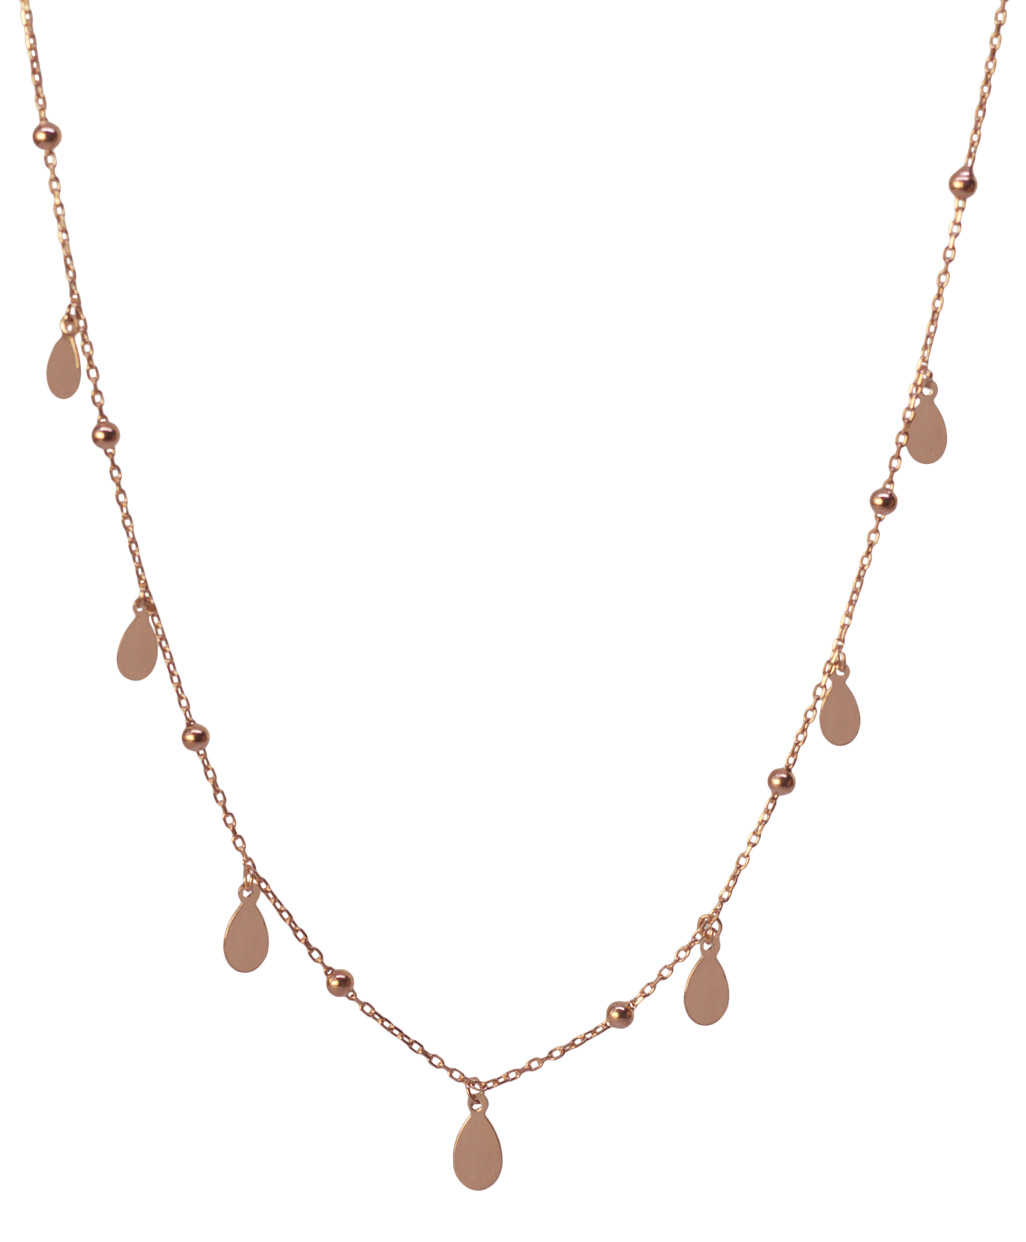 Flake Silver Necklace